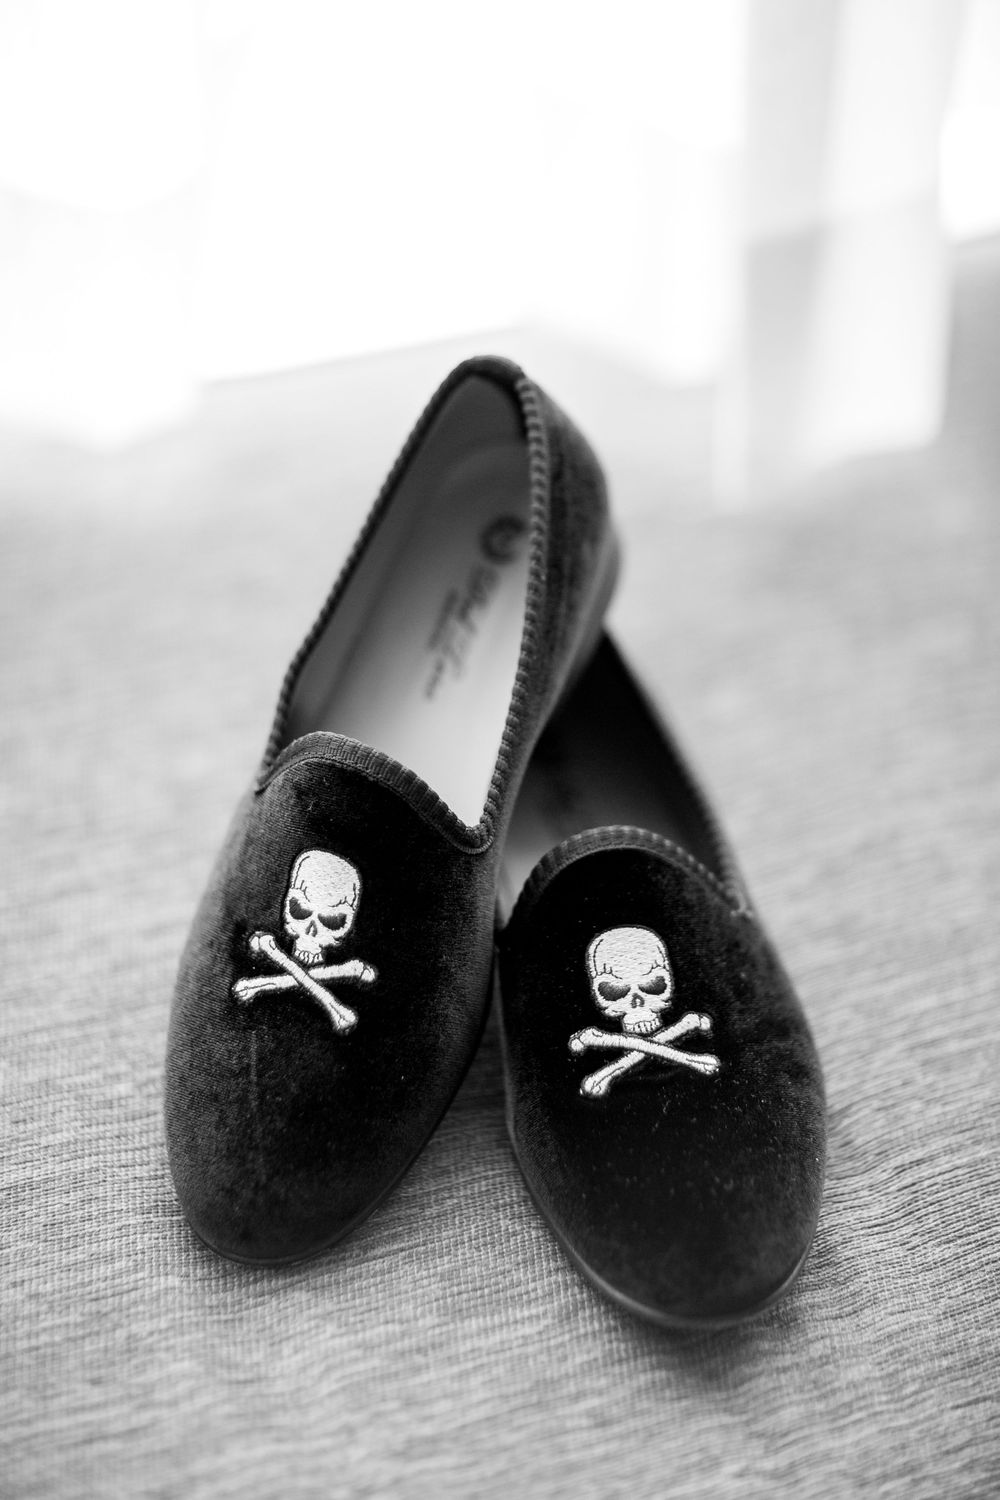 groom's shoes black with skulls